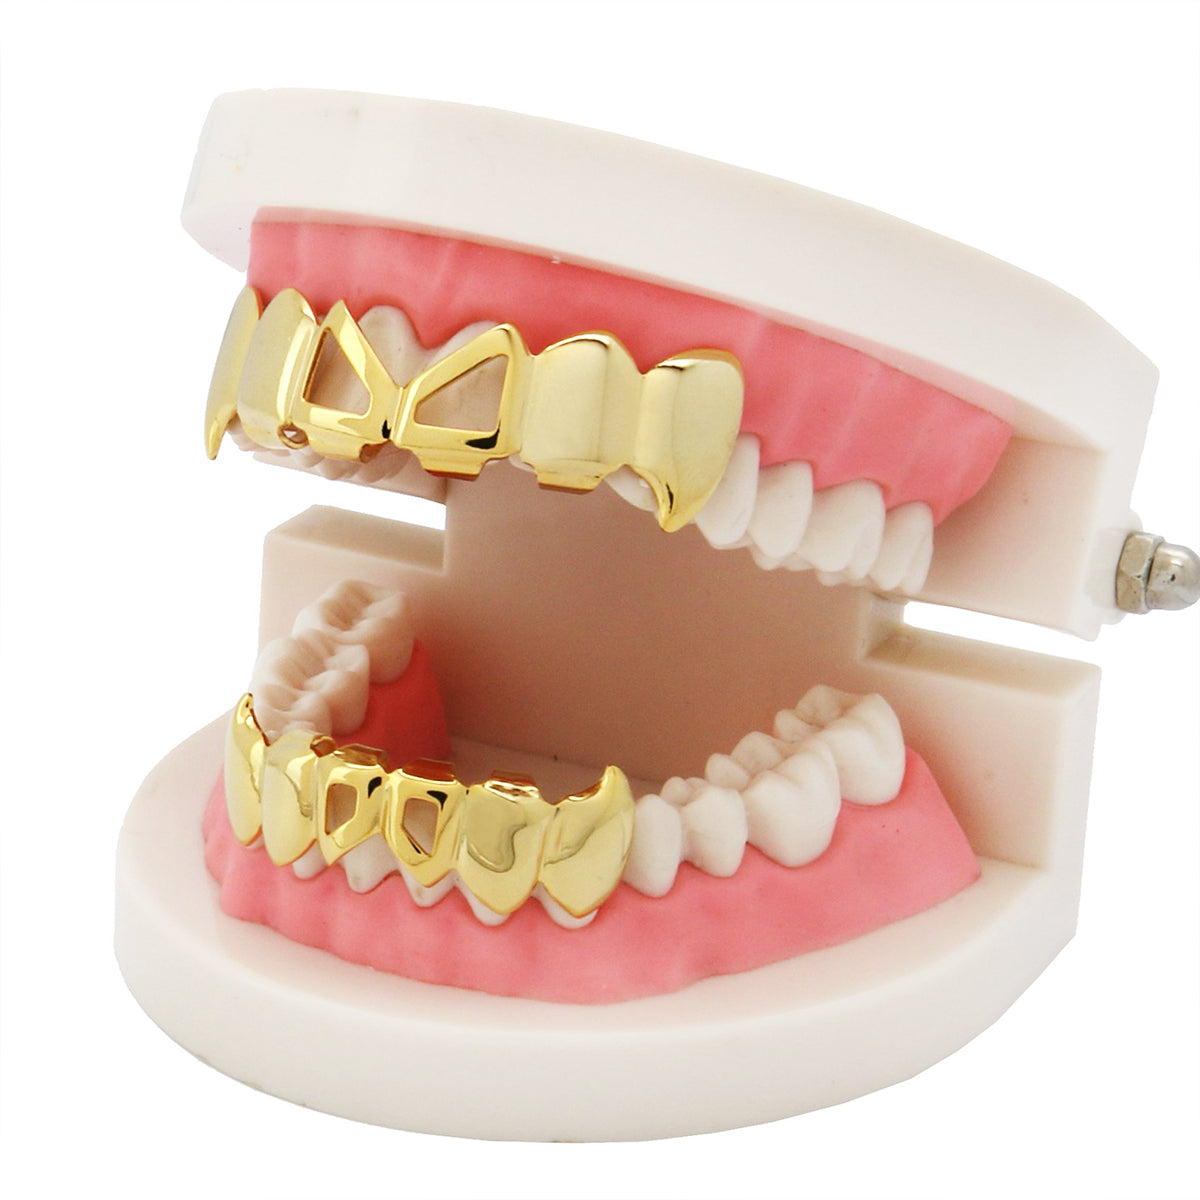 GRILLZ SET GOLD FRONT HOLLOW FANG